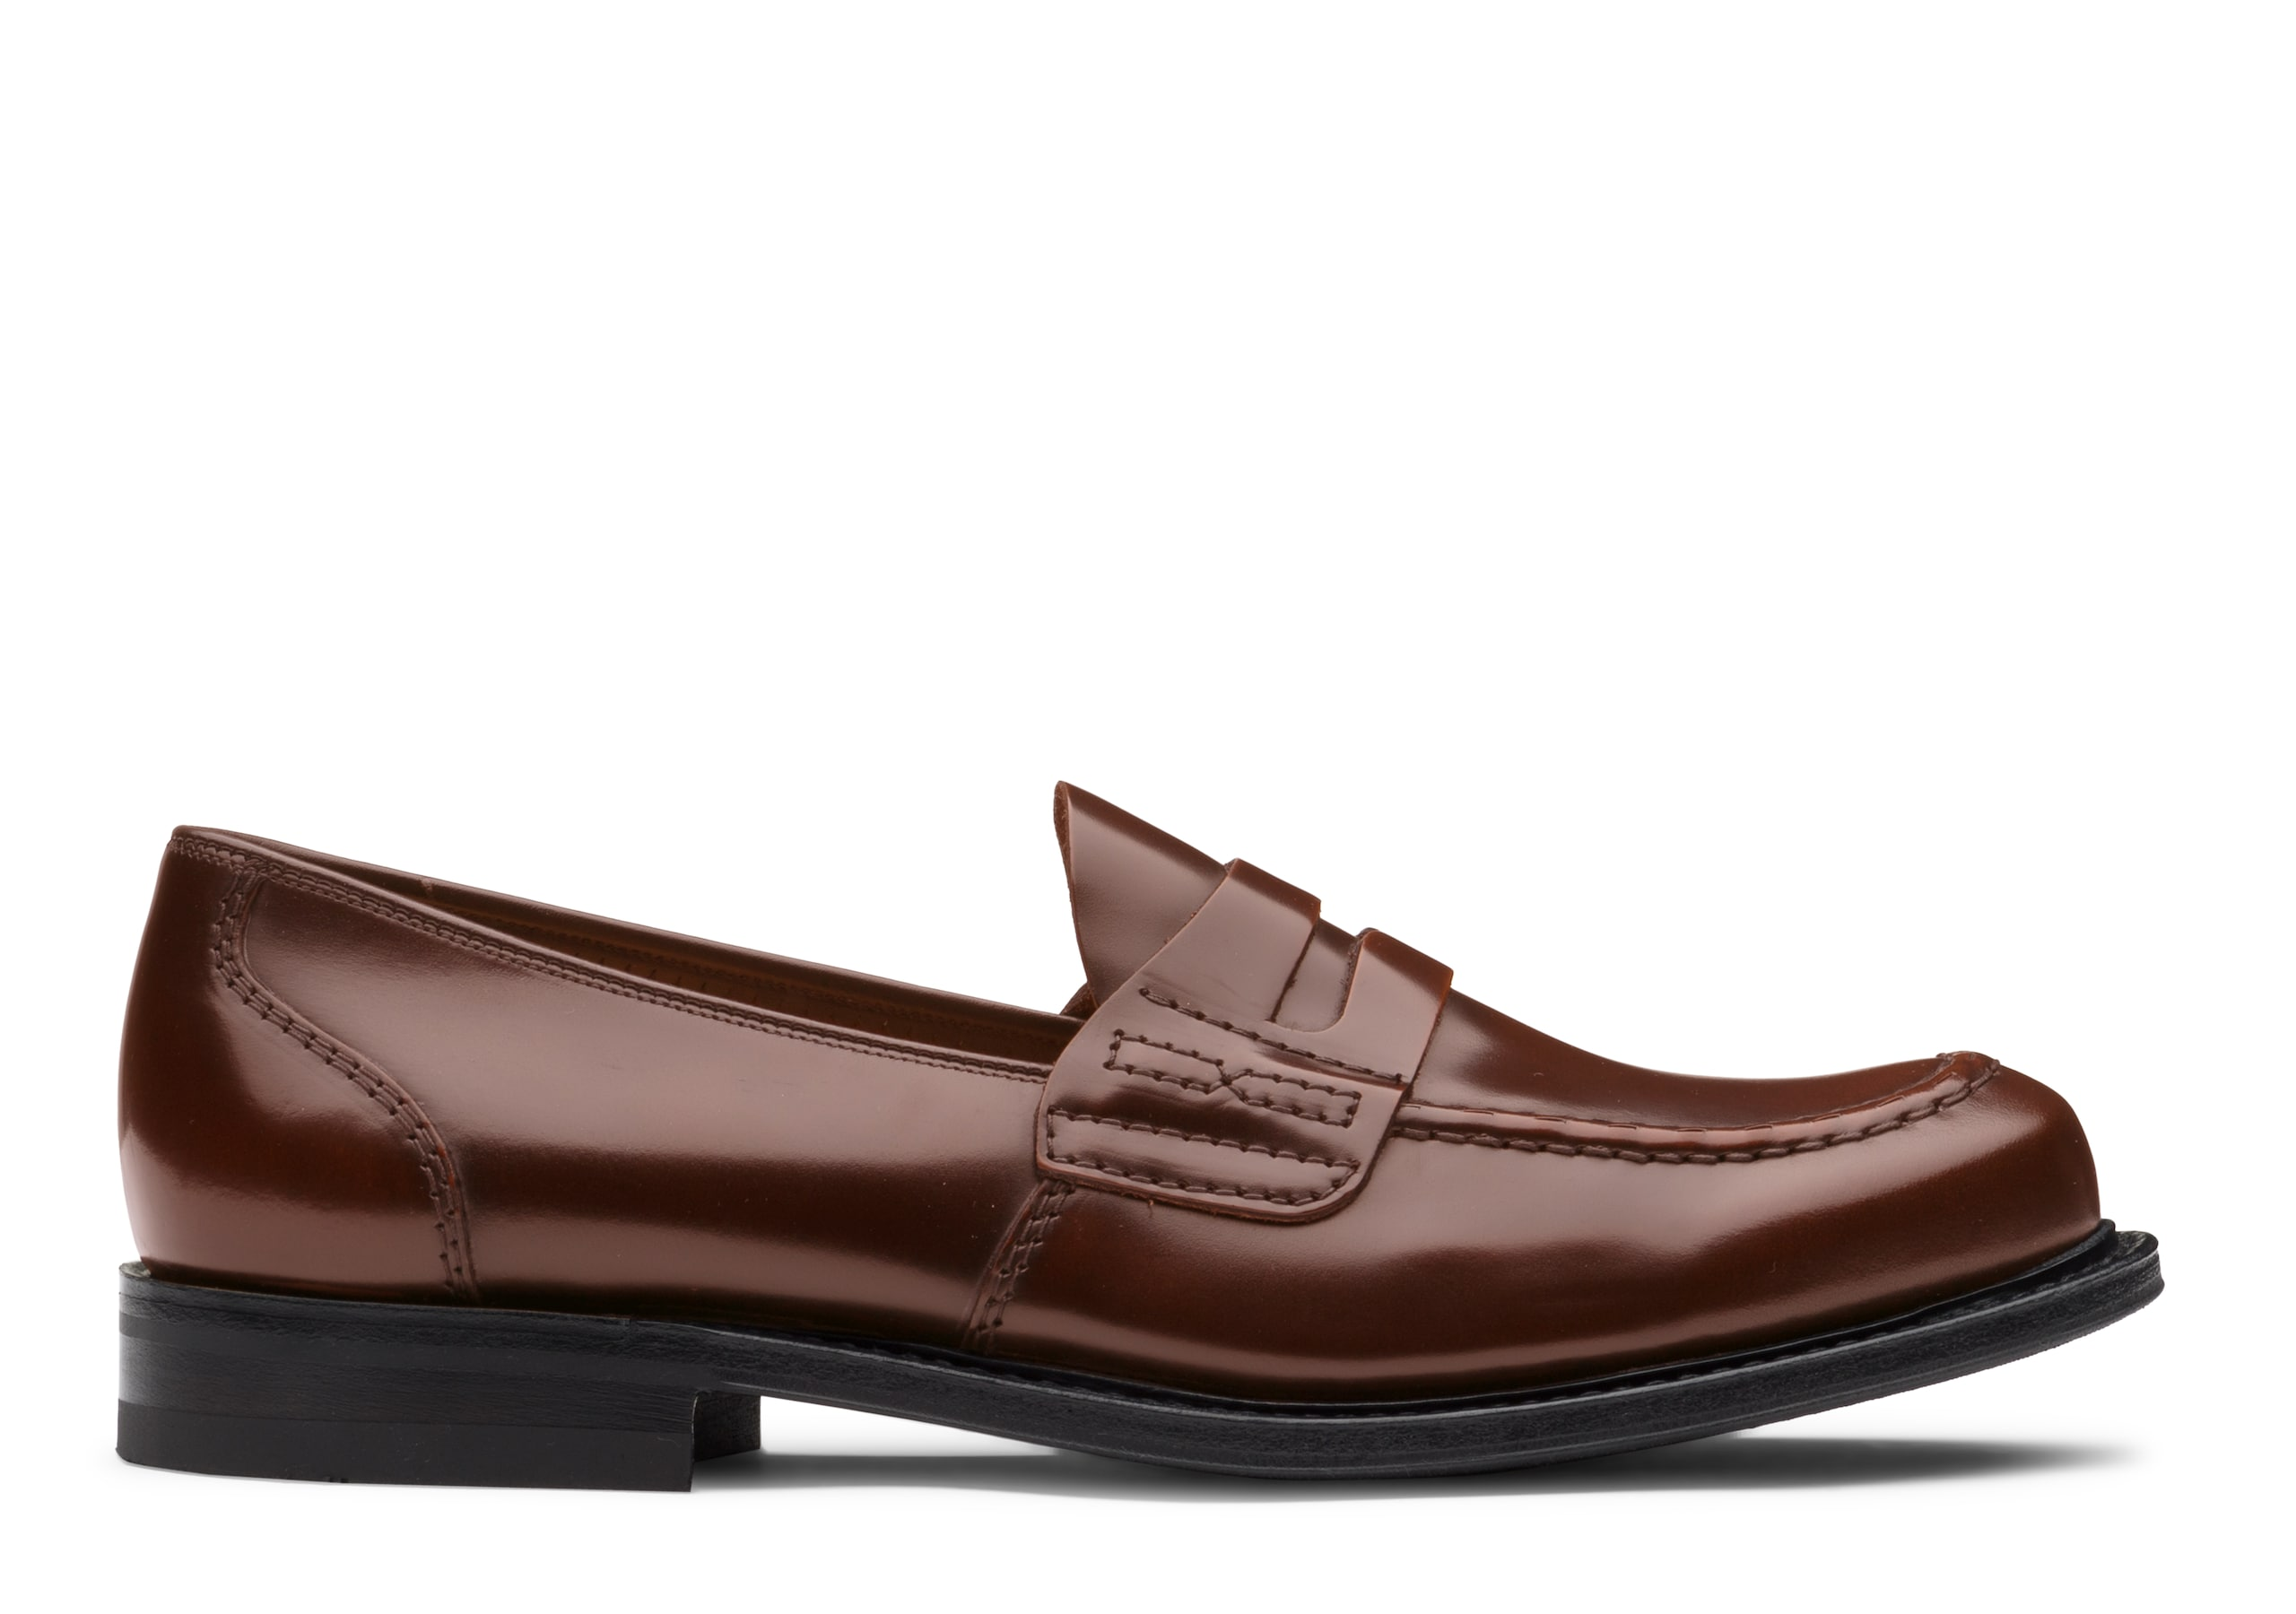 Farsley Church's Bookbinder Fumè Penny Loafer Brown